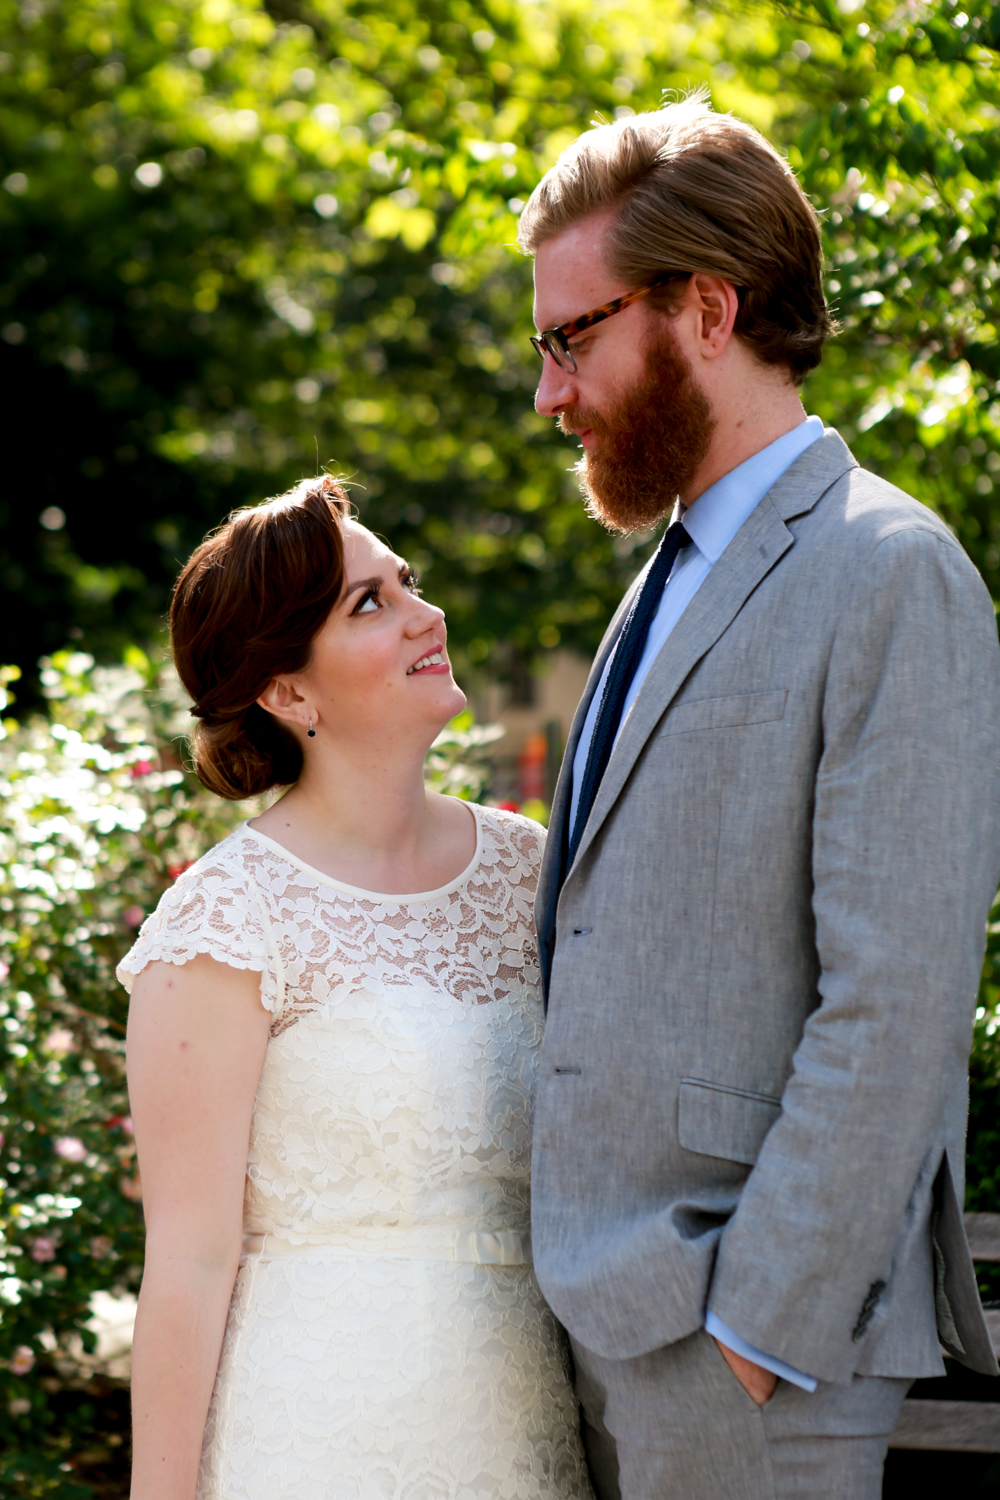 Bride and groom together before luxury elopement